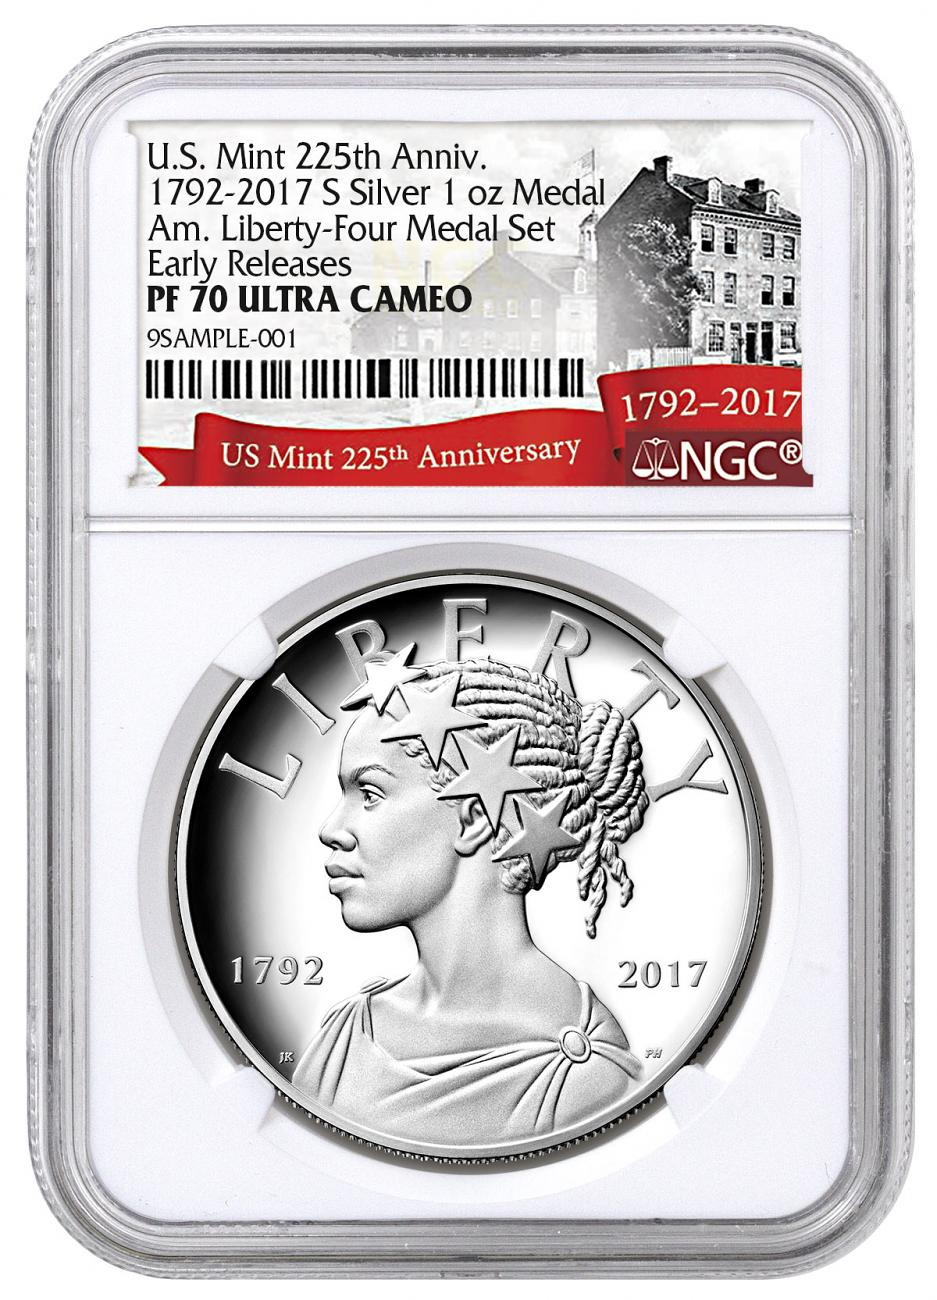 2017-S United States American Liberty 225th Anniversary 1 oz Silver Proof Medal NGC PF70 ER Exclusive U.S. Mint 225th Anniversary Label